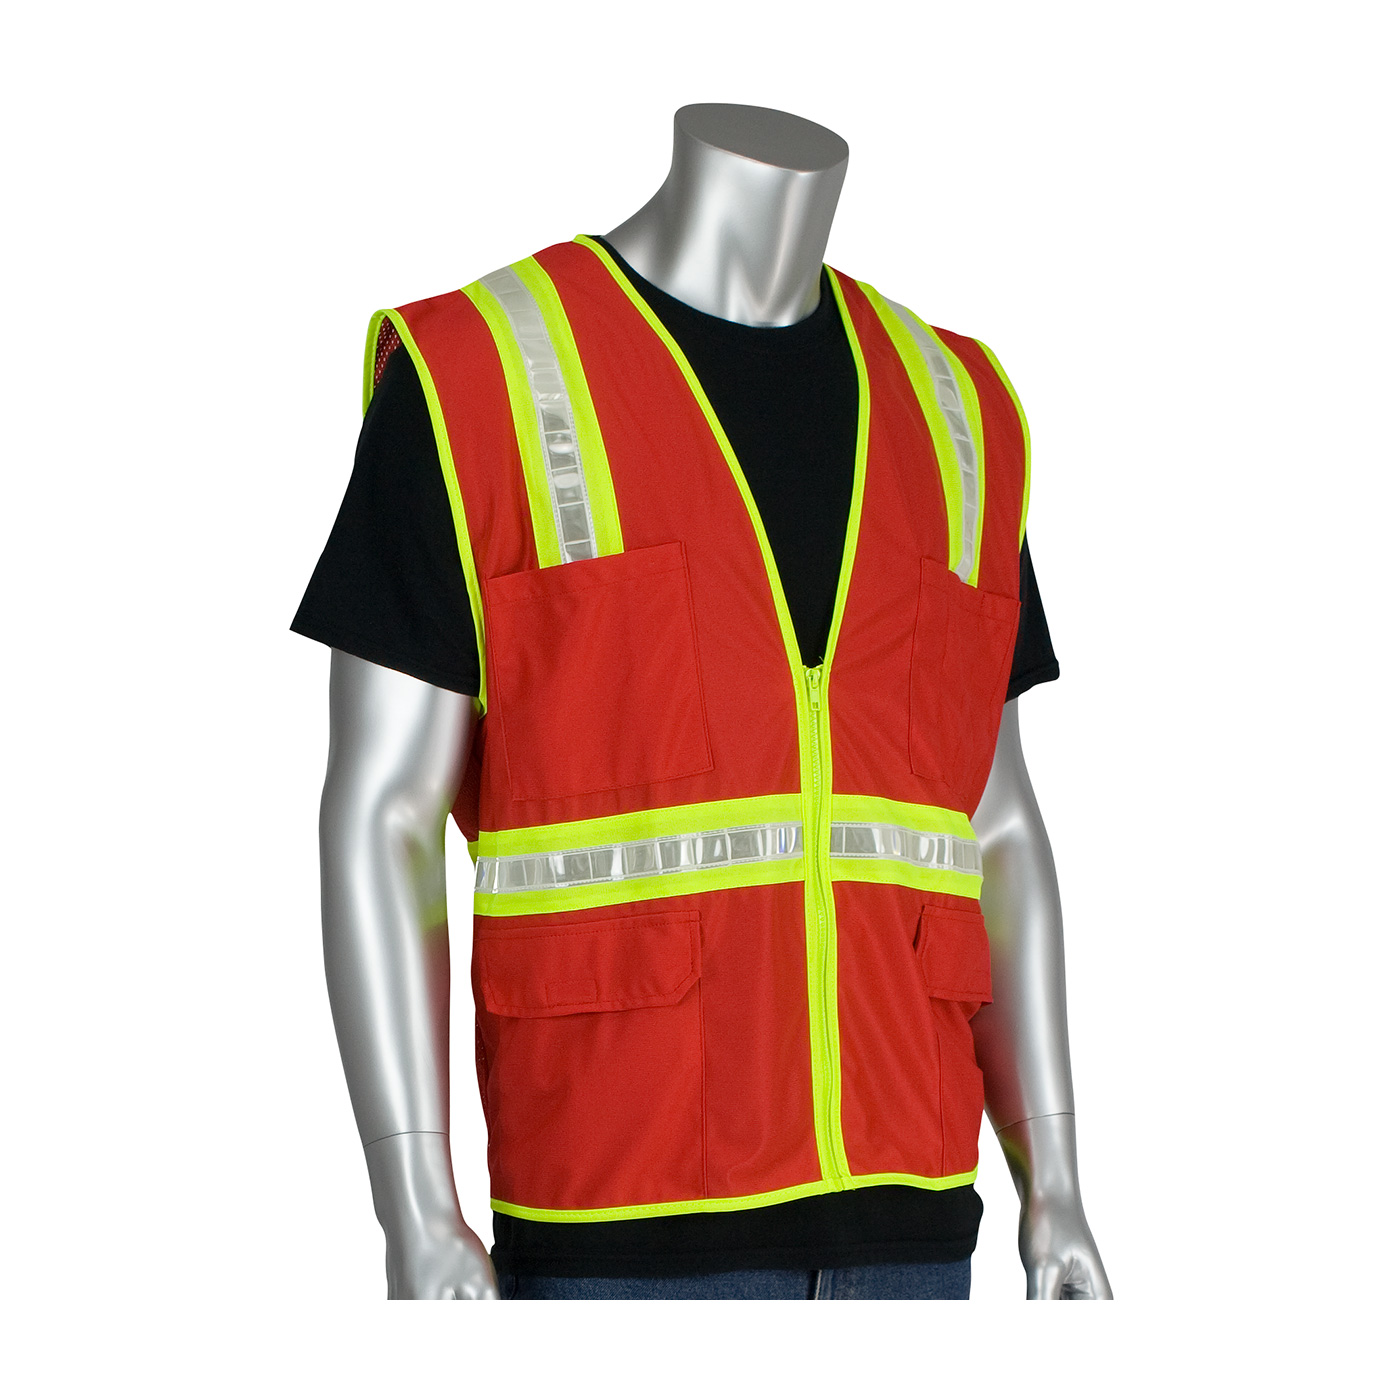 #300-1000 PIP® Non-ANSI Red Surveyor's Style Safety Vest with a Solid Front, Mesh Back and Prismatic Tape